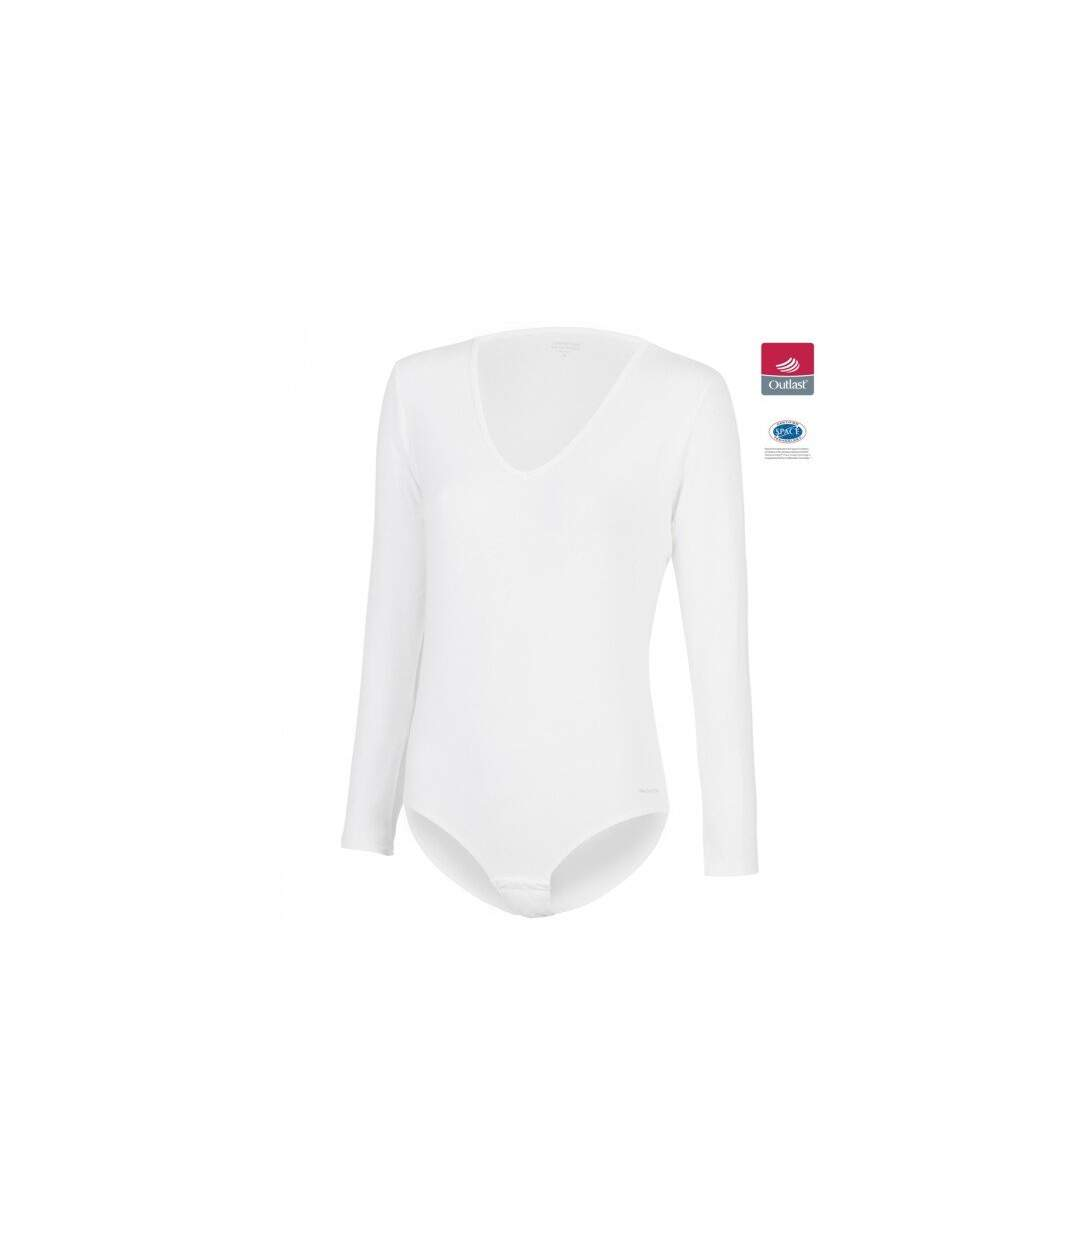 IMPETUS Body Manches longues Col V Femme Coton Viscose INNOVATION Blanc